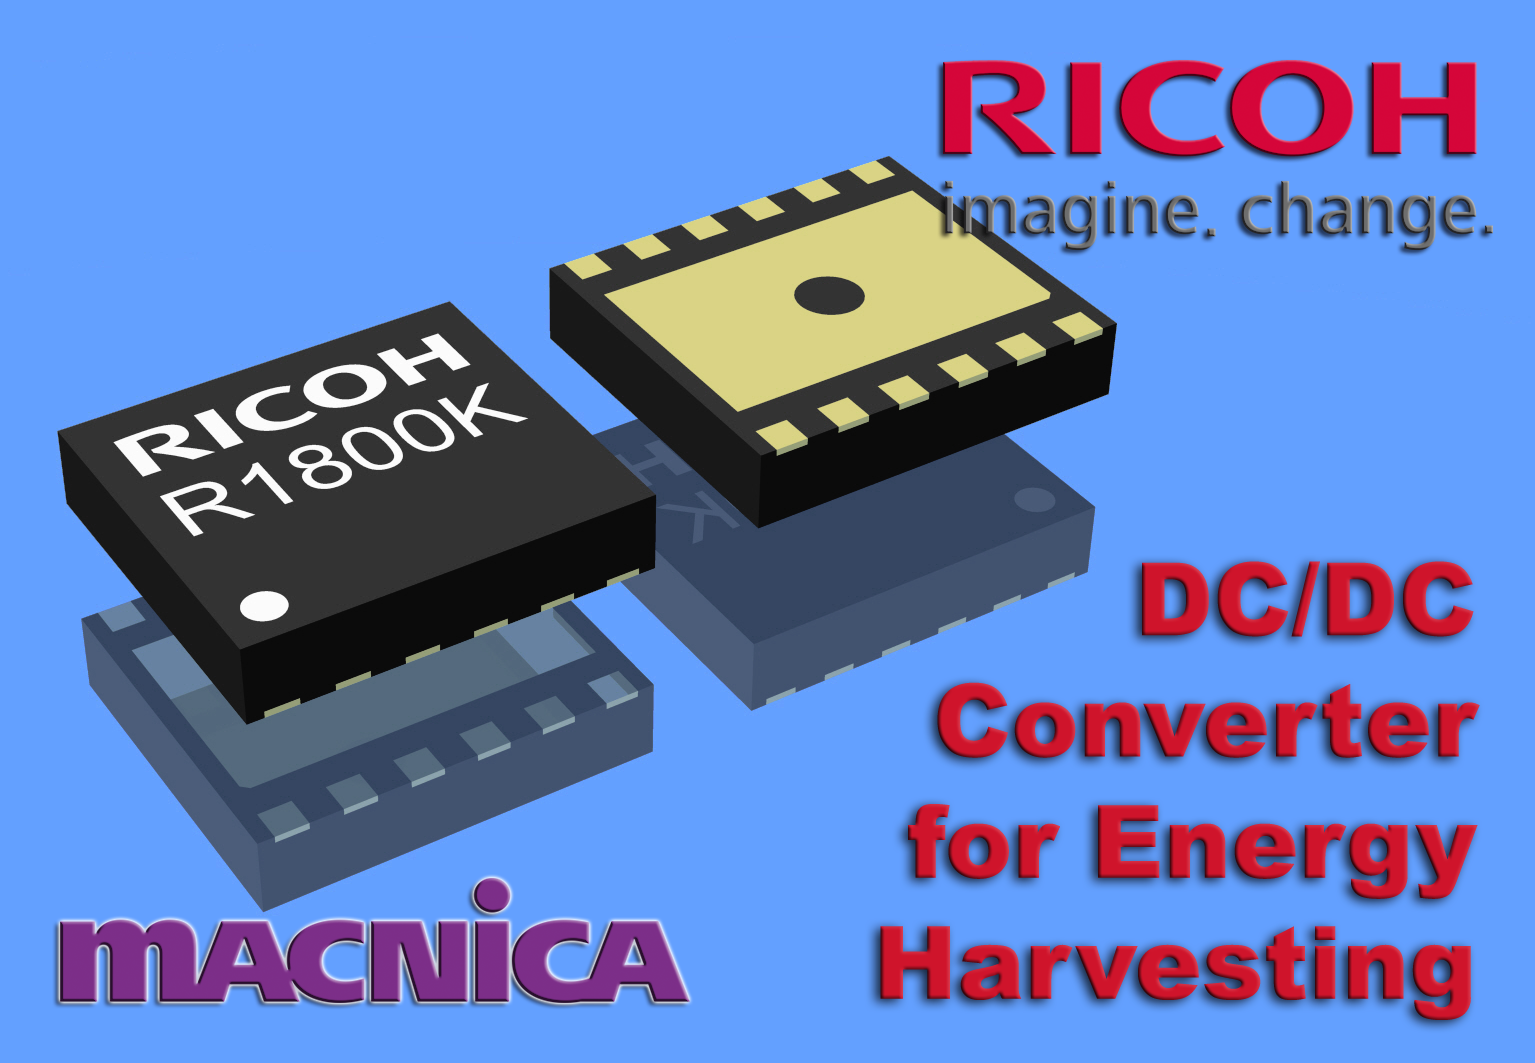 Ricoh Launches Buck Dc Converter With 144 Na Quiescent Current Dctodcconverterpng For Energy Harvesting Applications